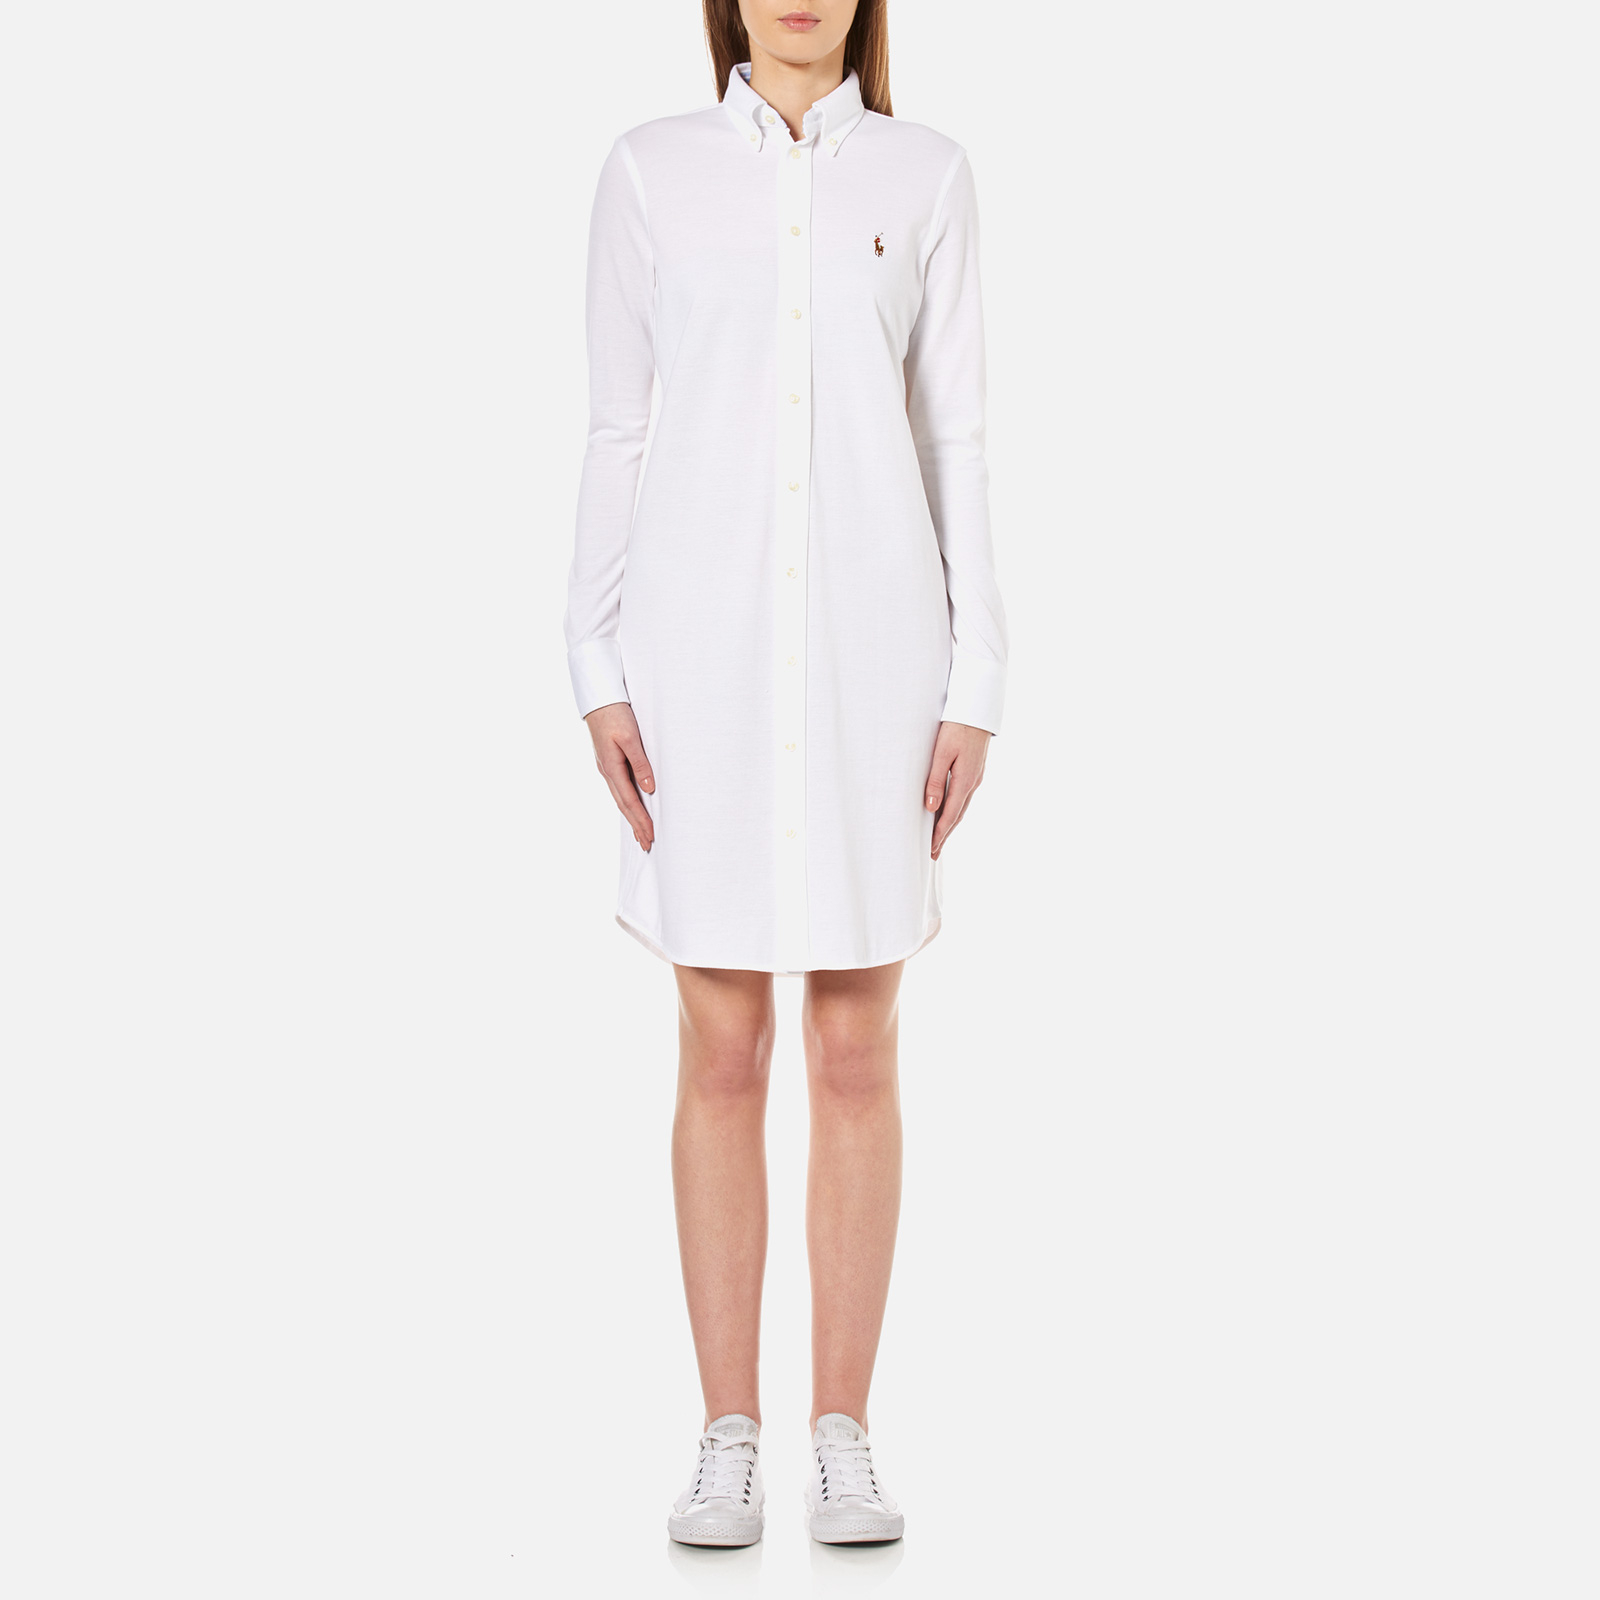 9ddb0f3095f Polo Ralph Lauren Women s Oxford Shirt Dress - White - Free UK Delivery  over £50